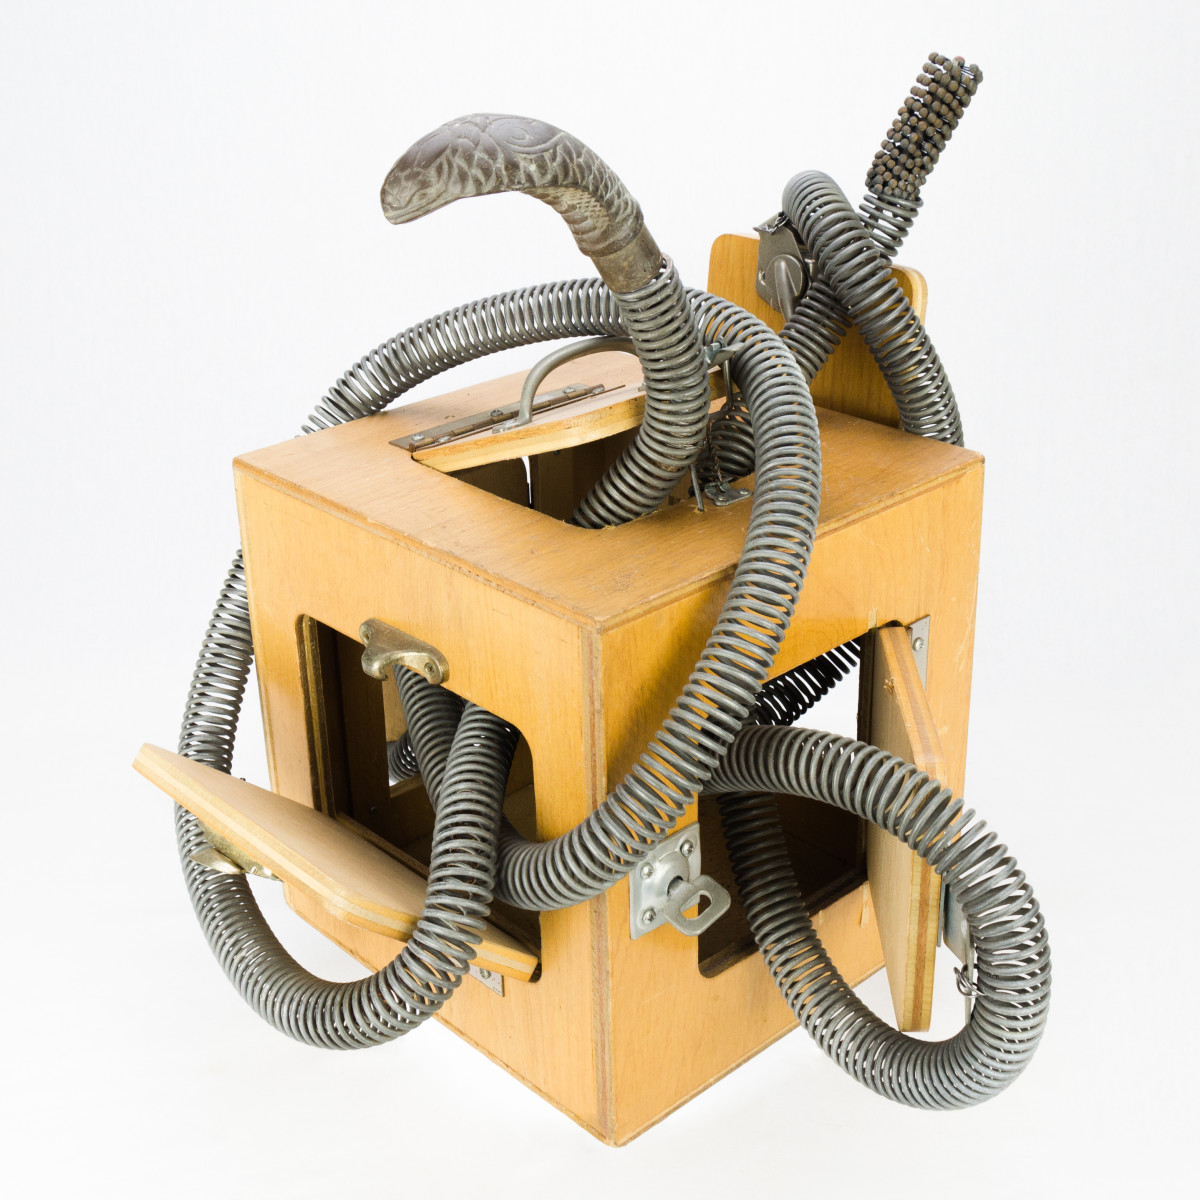 Snake In The Box